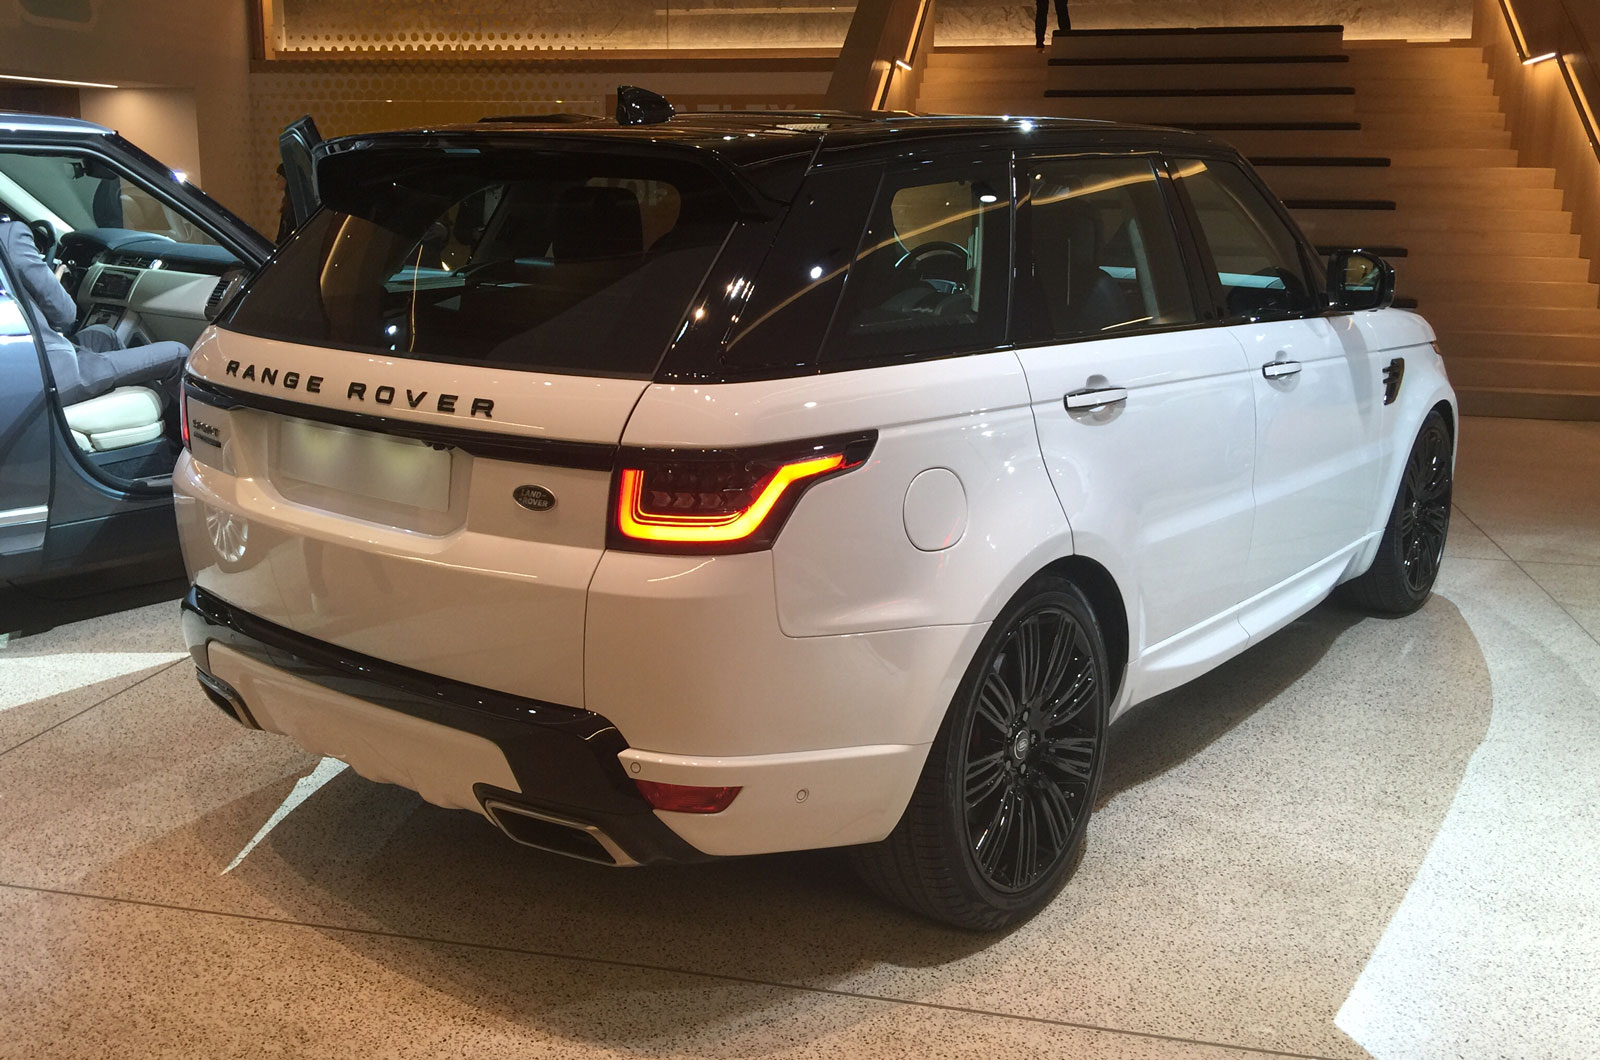 Plug-in hybrid joins revised Range Rover line-up